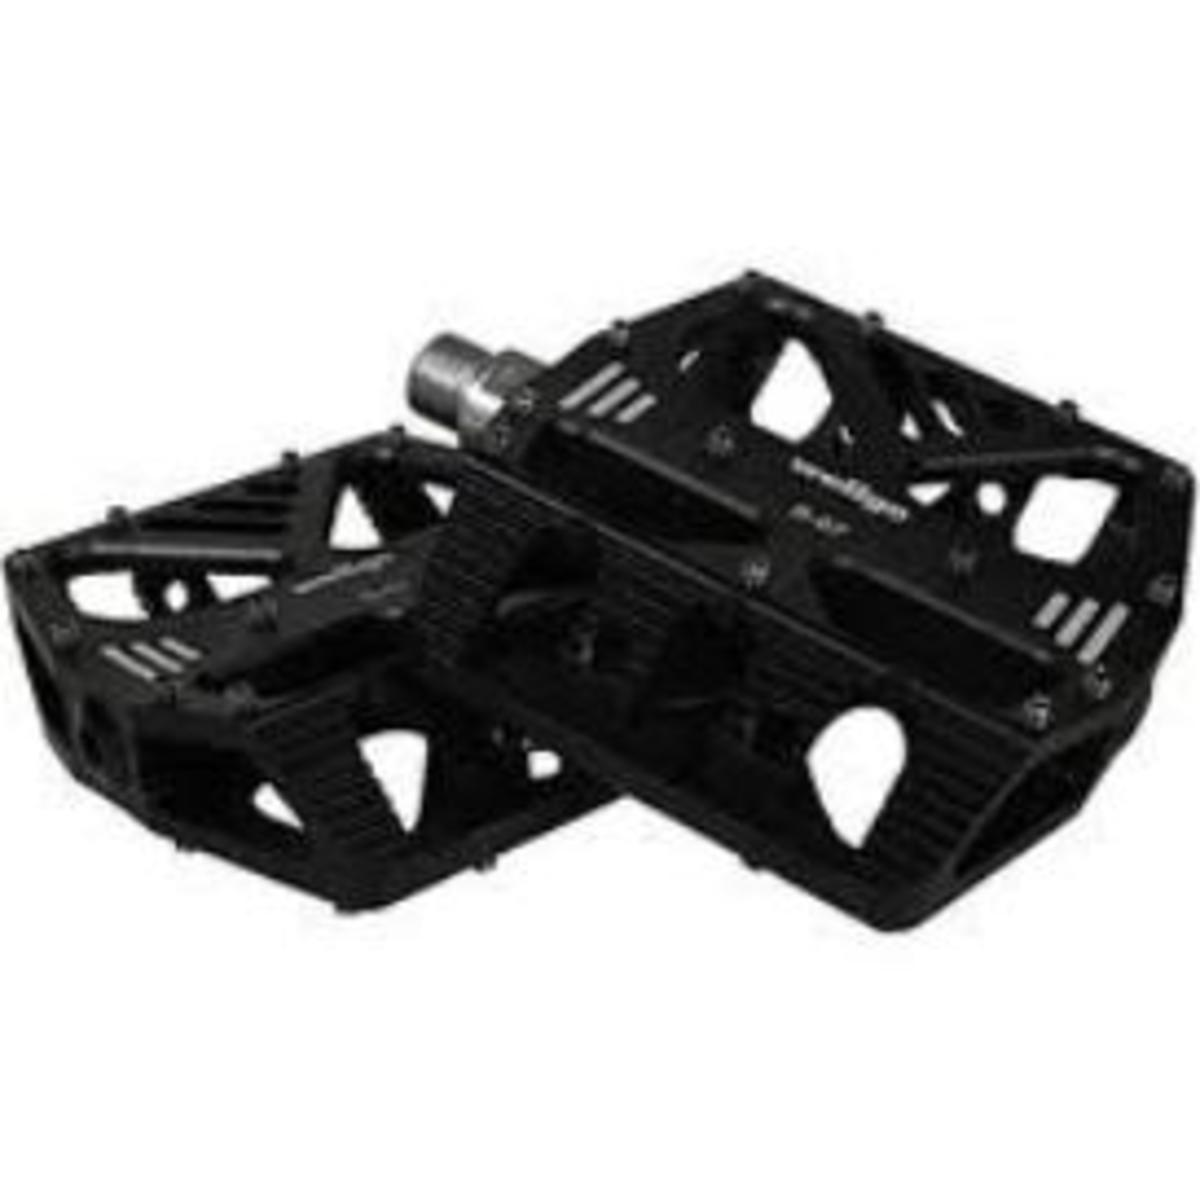 top-5-mountain-bike-platform-pedals-under-50